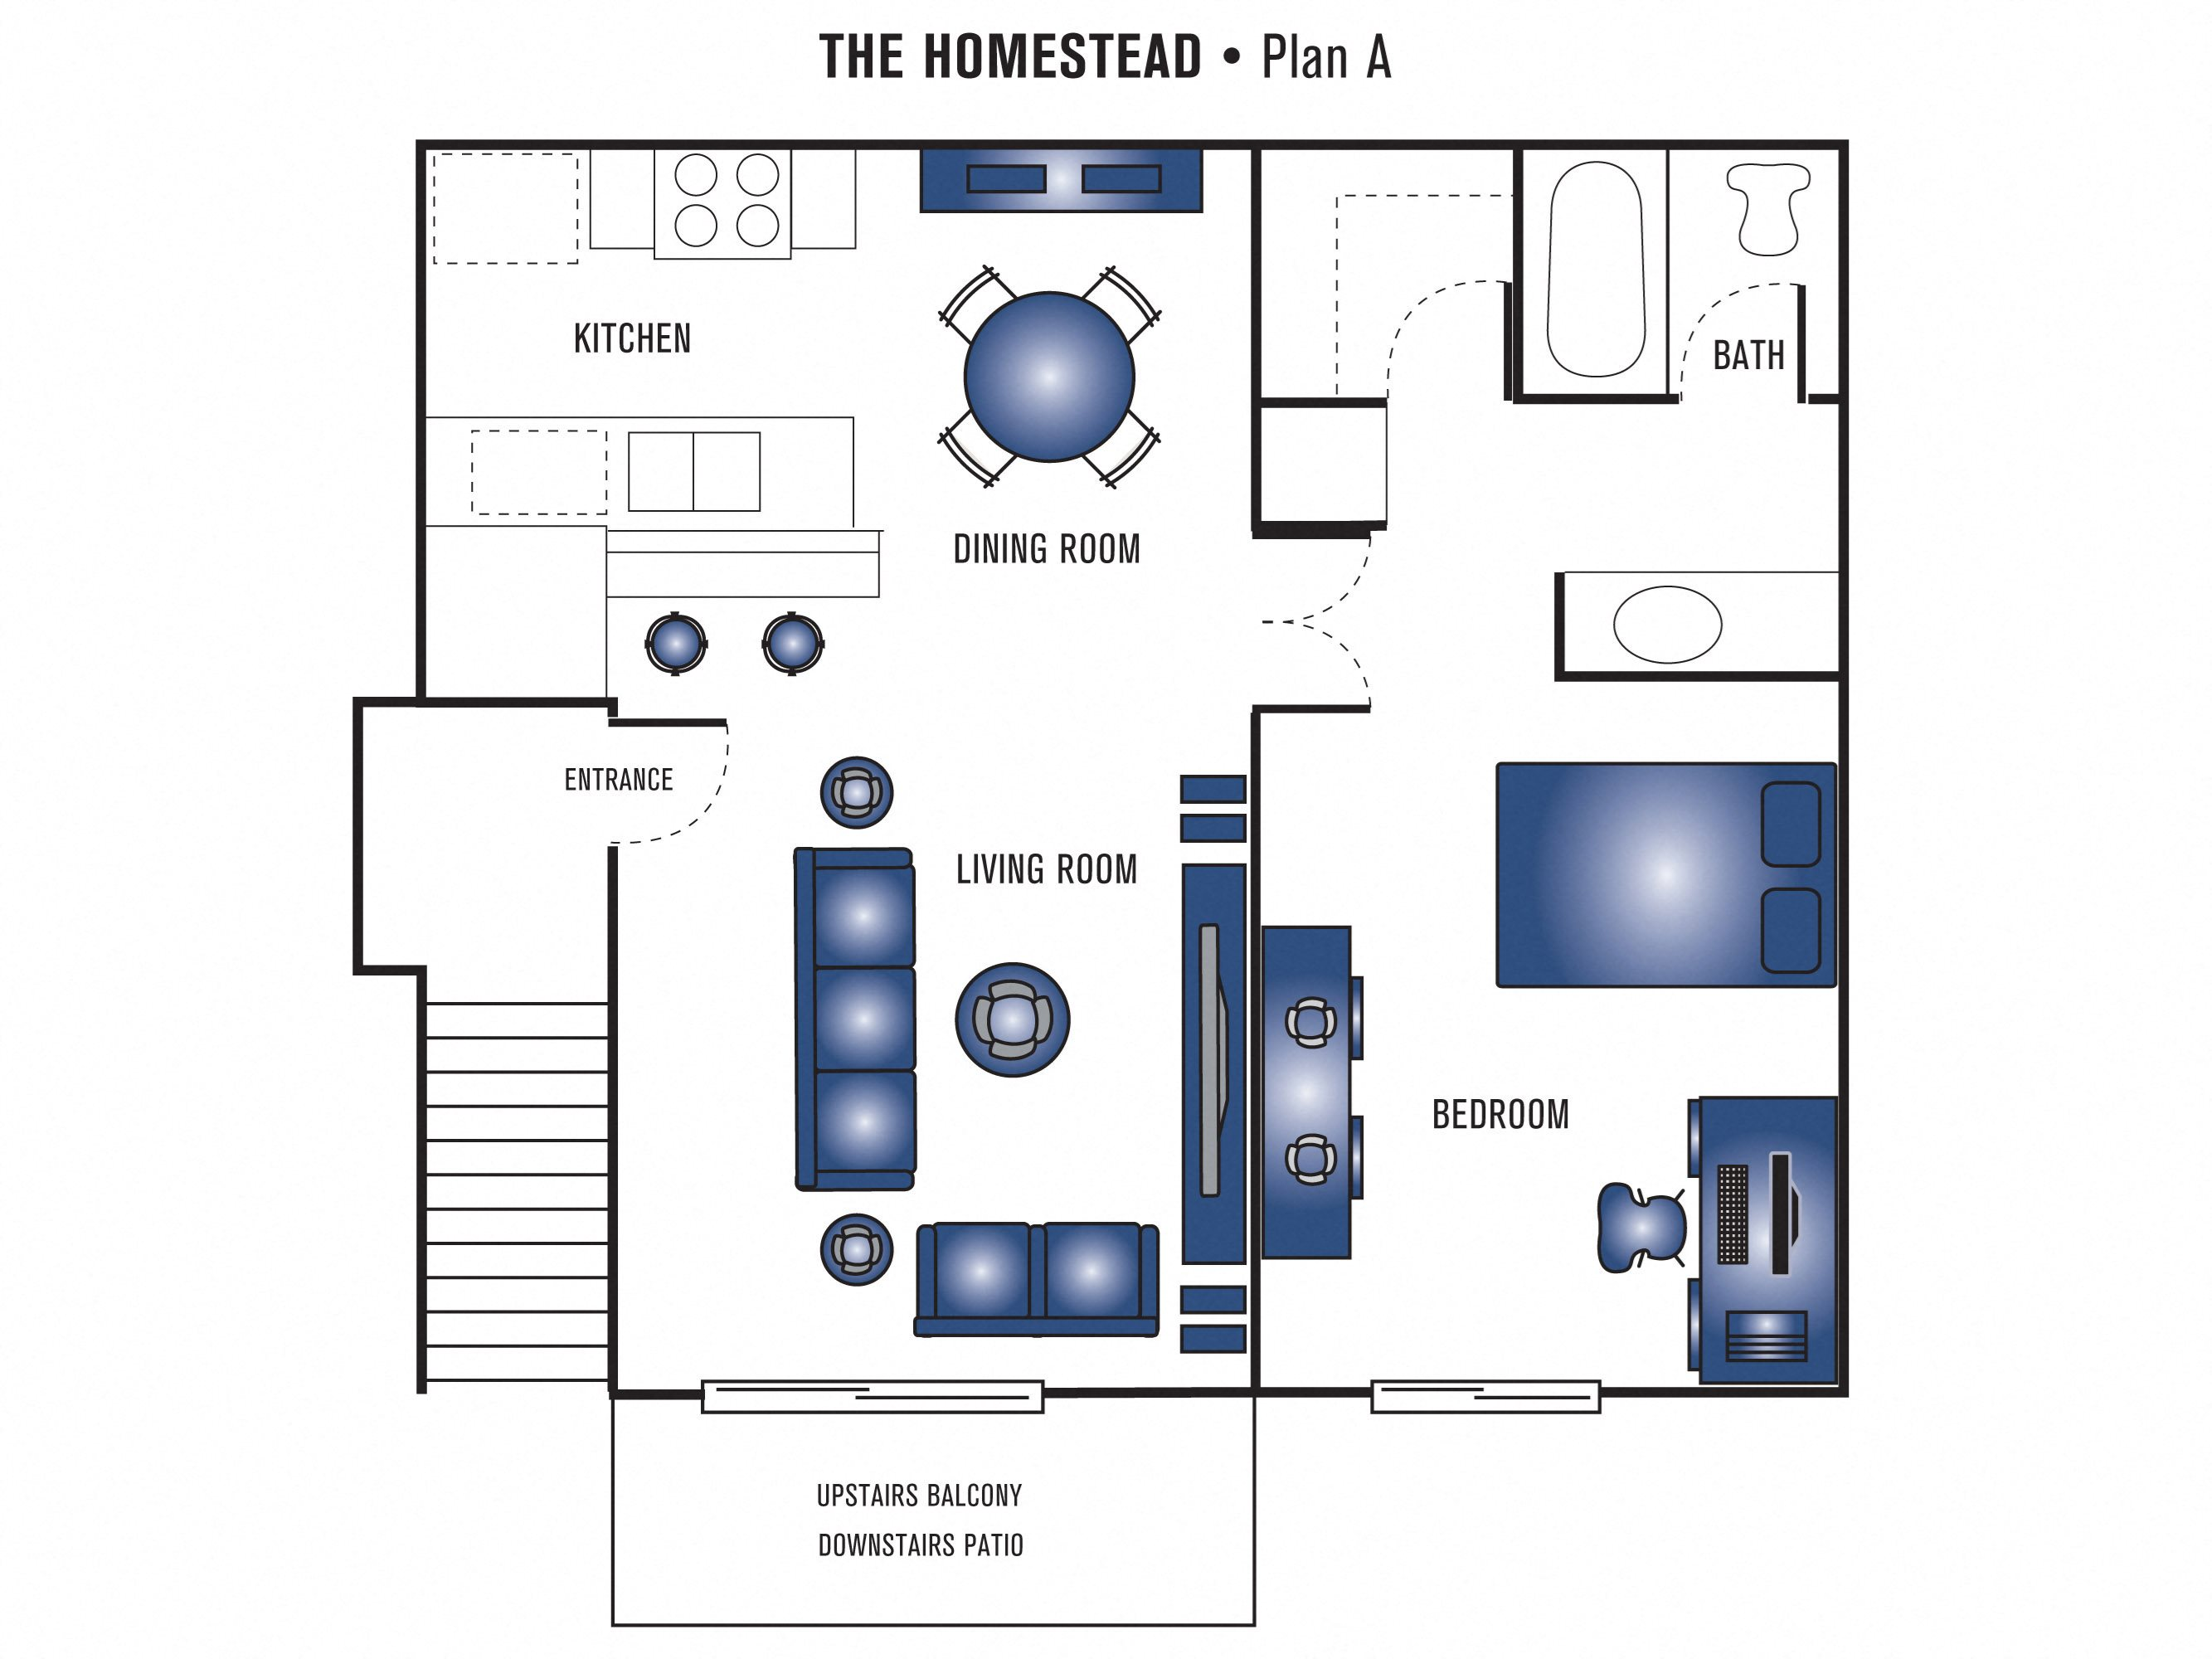 The Homestead Apartments Fullerton Plan A